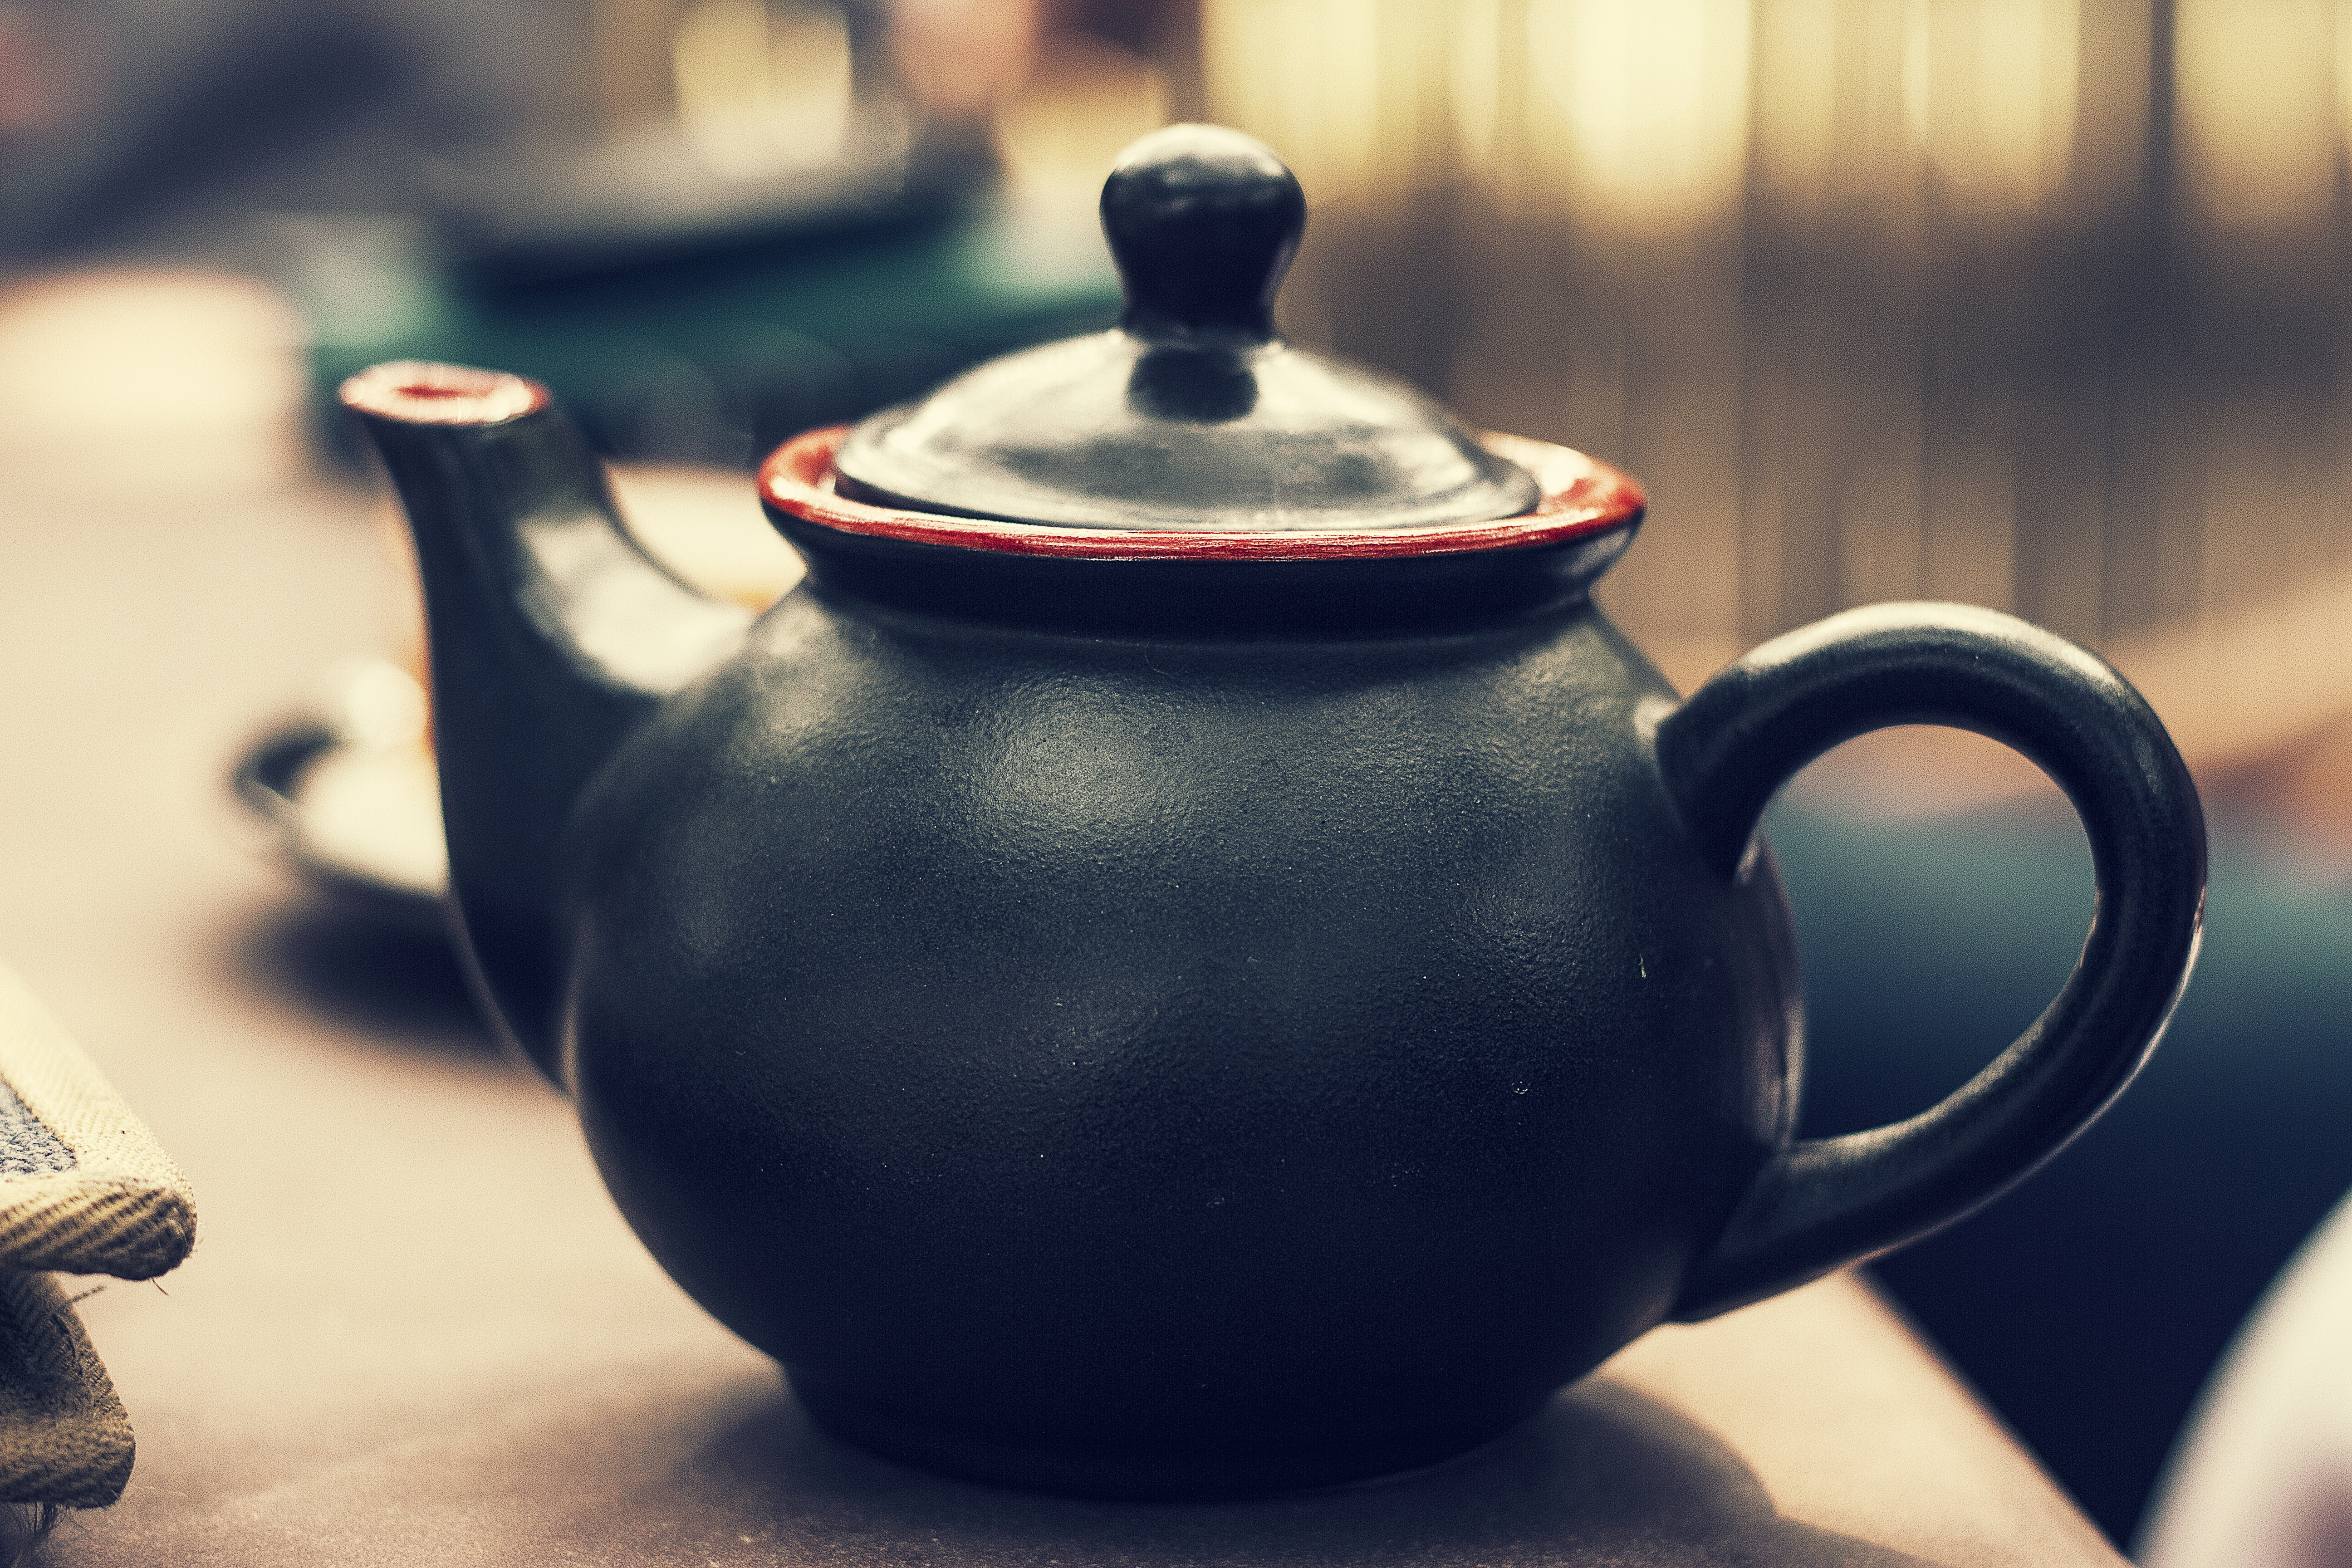 Black and red ceramic tea kettle with a handle and blurry background